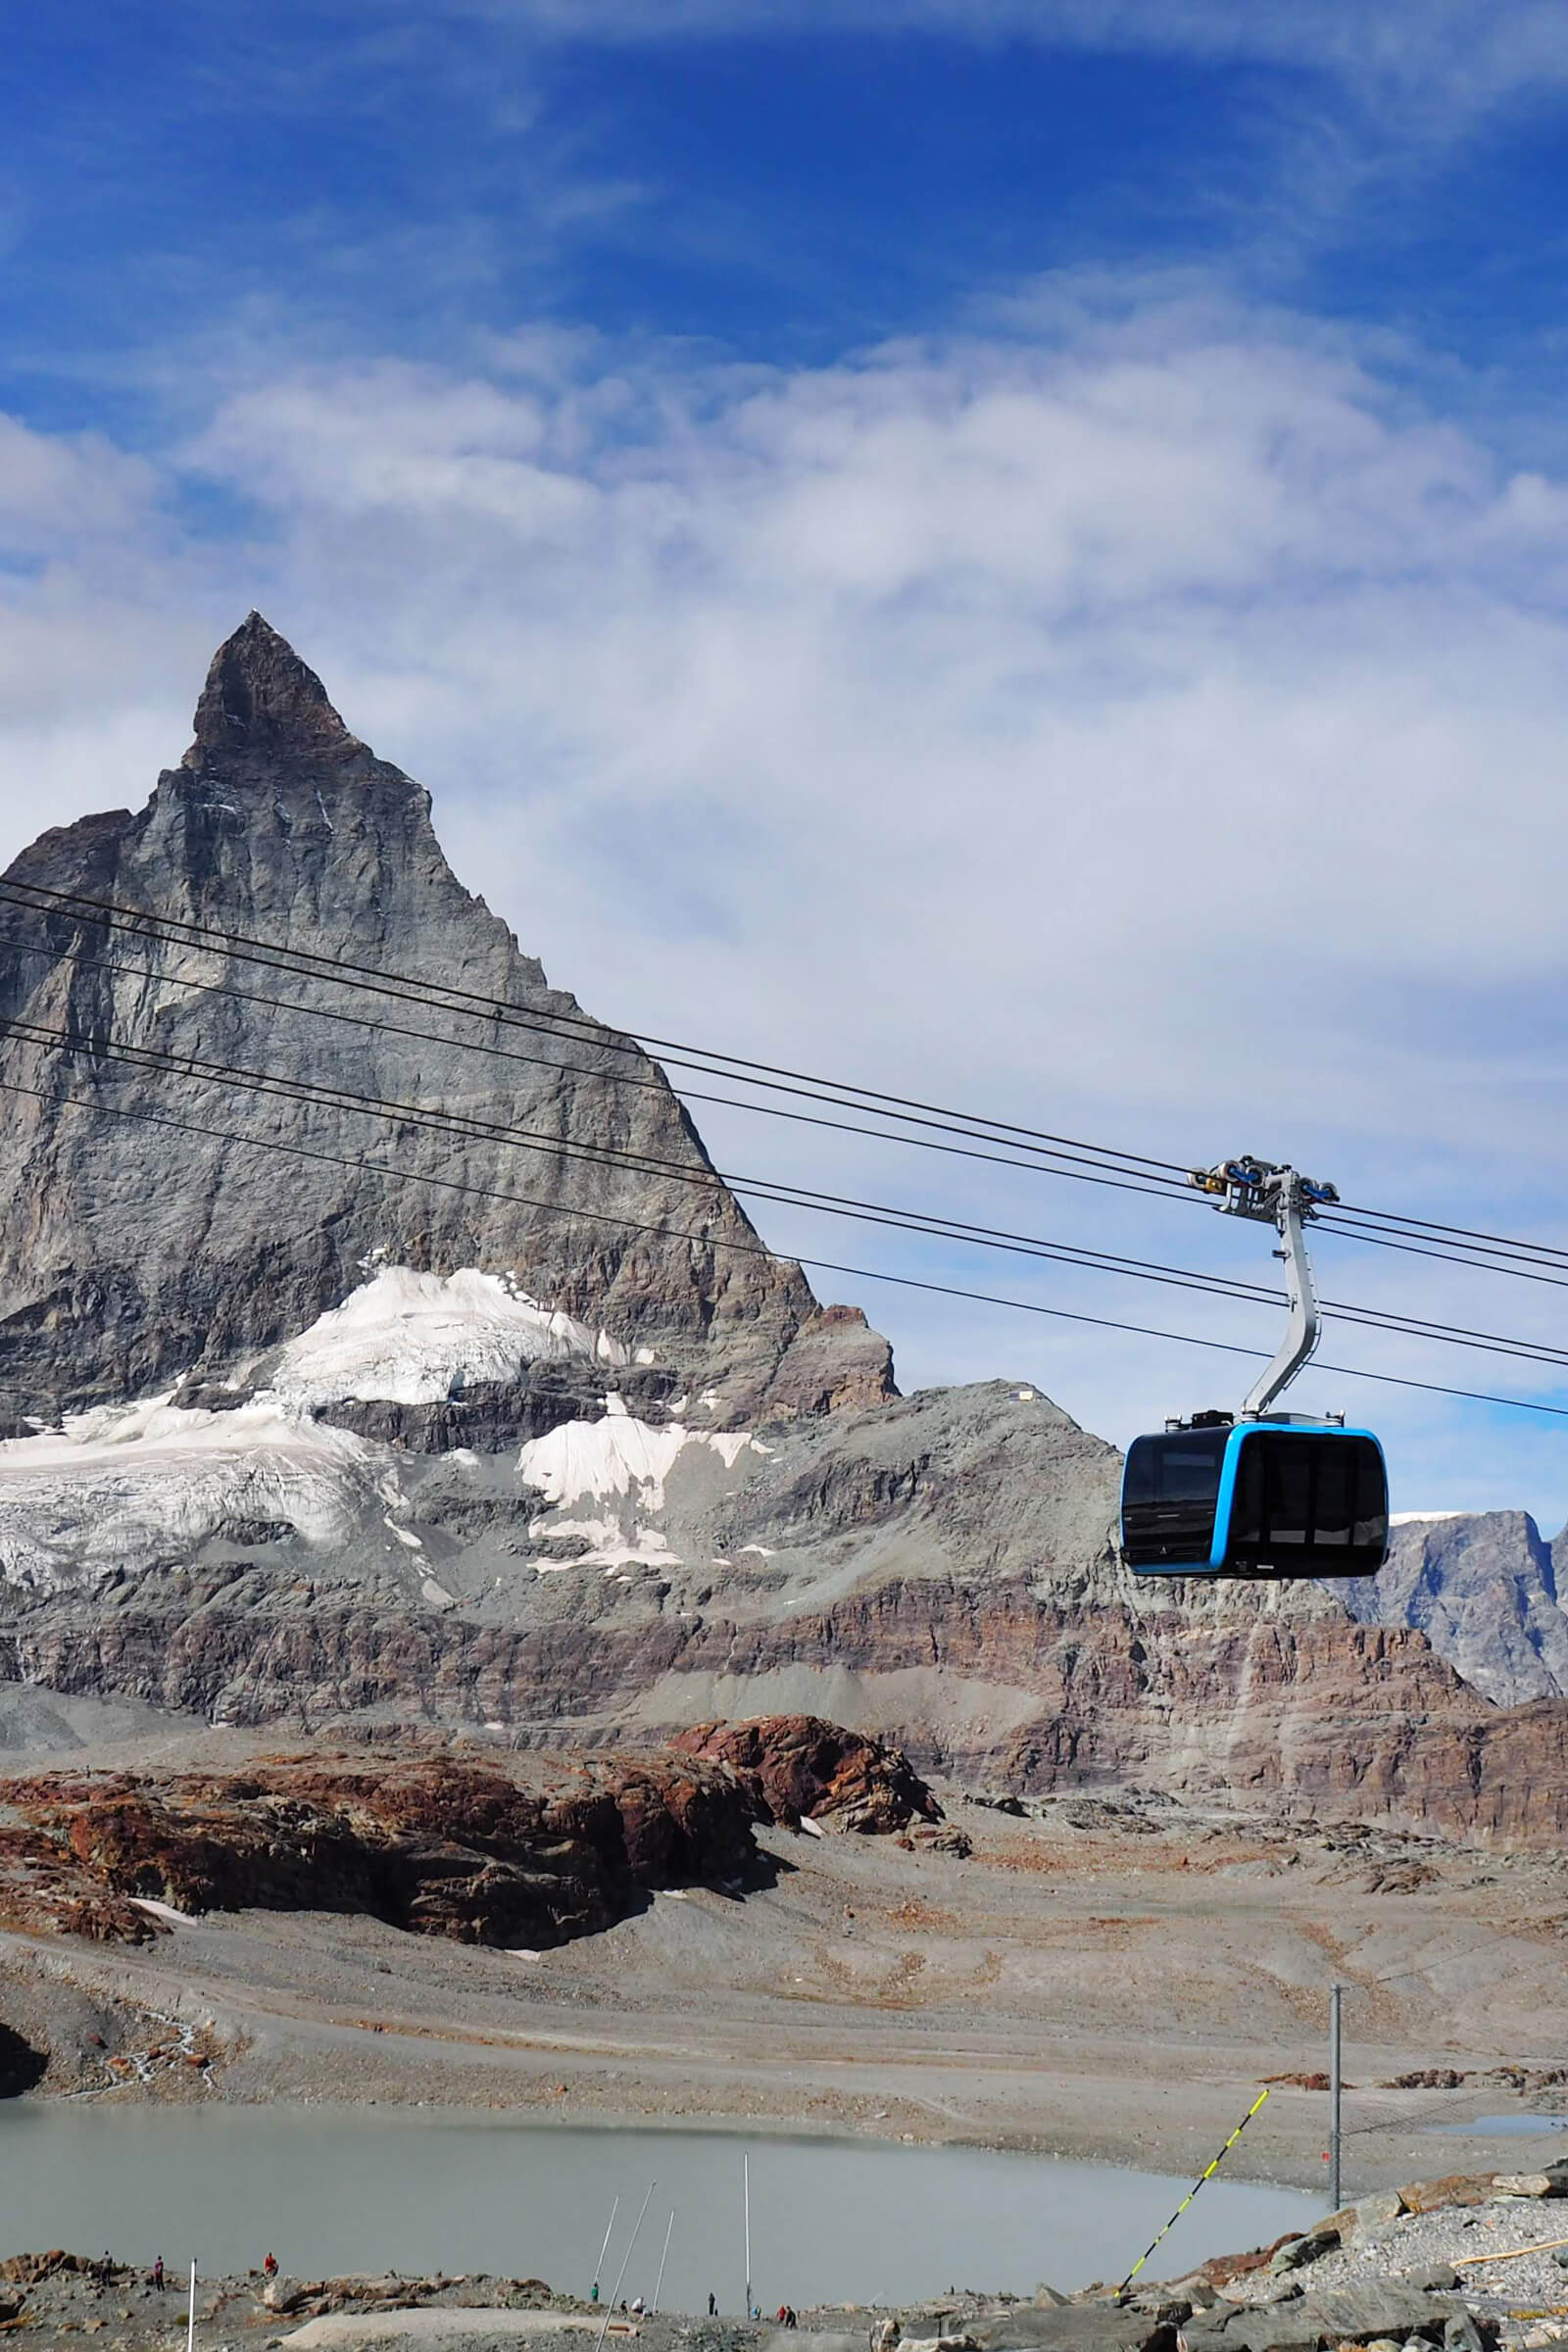 Cable cars in Switzerland - Matterhorn glacier paradise cable car